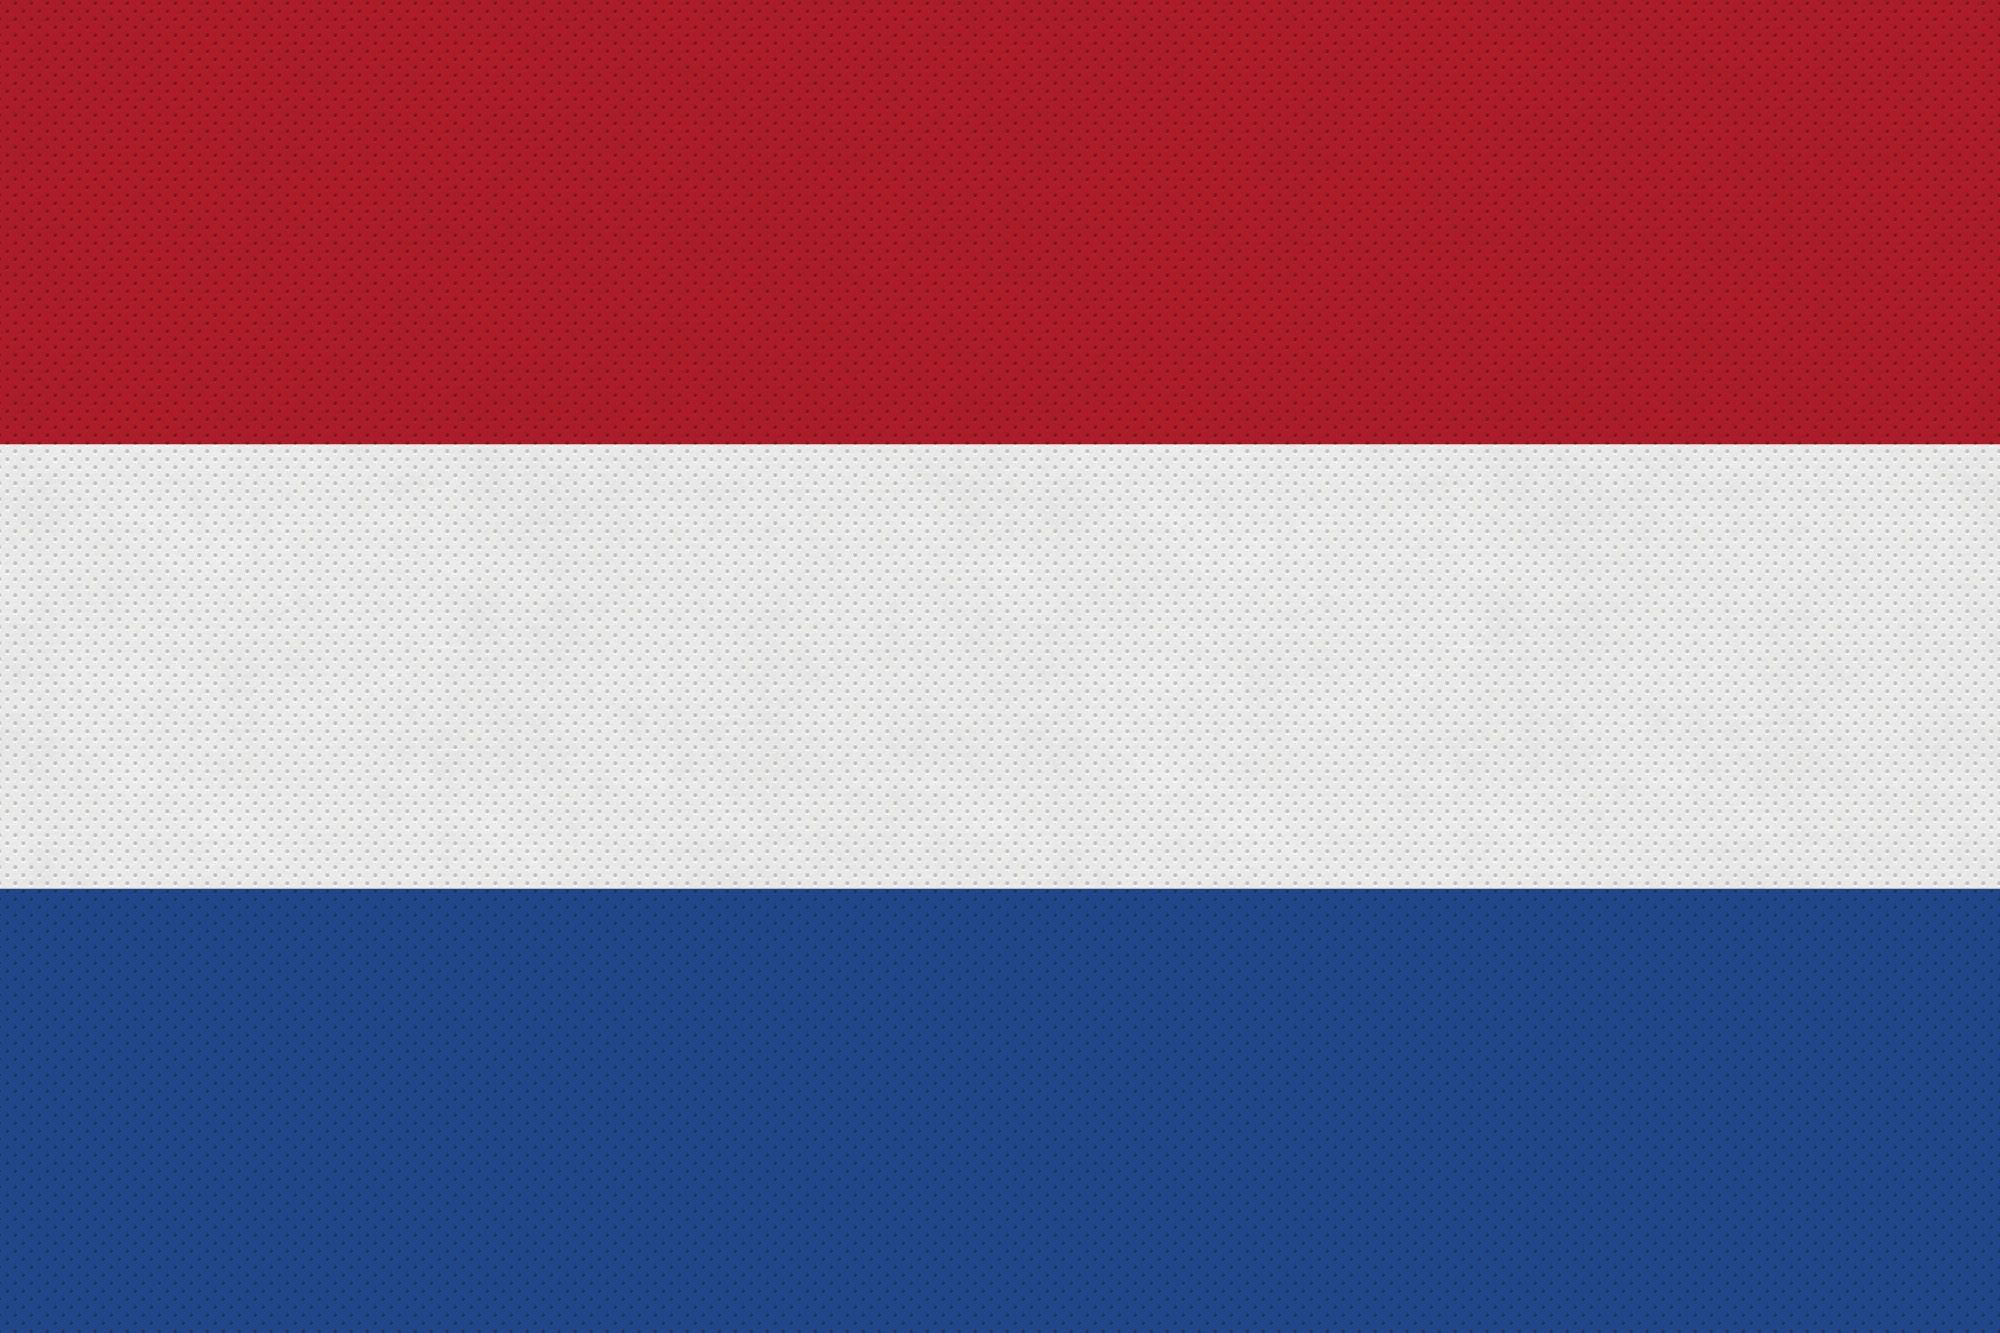 Netherlands Flag Wallpapers